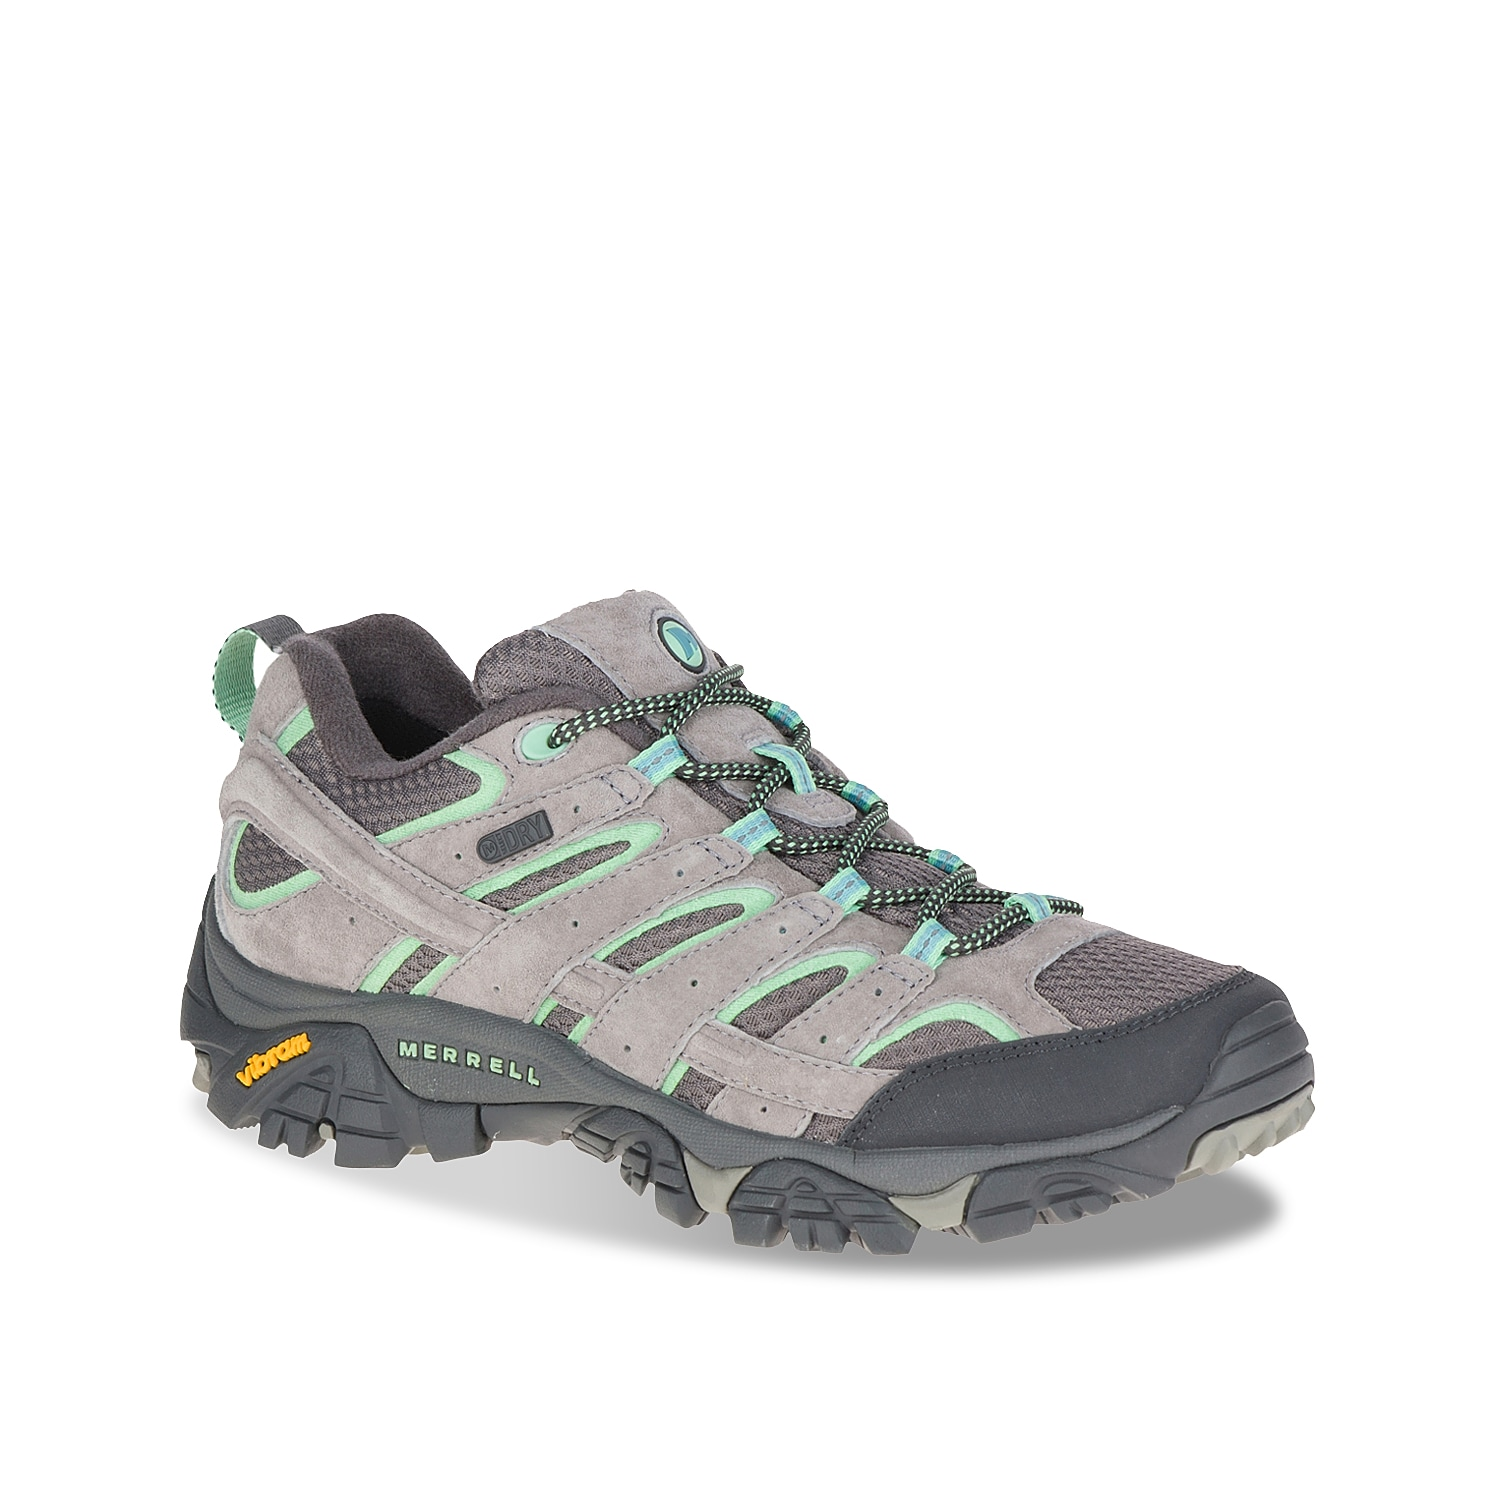 Never fear adventure when you have these Merrell hiking shoes at the ready. The Moab 2 Waterproof sneaker is a breathable hiker that\\\'s well ventilated and deeply cushioned for refreshing comfort. A closed-cell bellows tongue keeps moisture and debris out, while an air cushion unit in the heel absorbs shock for increased stability.